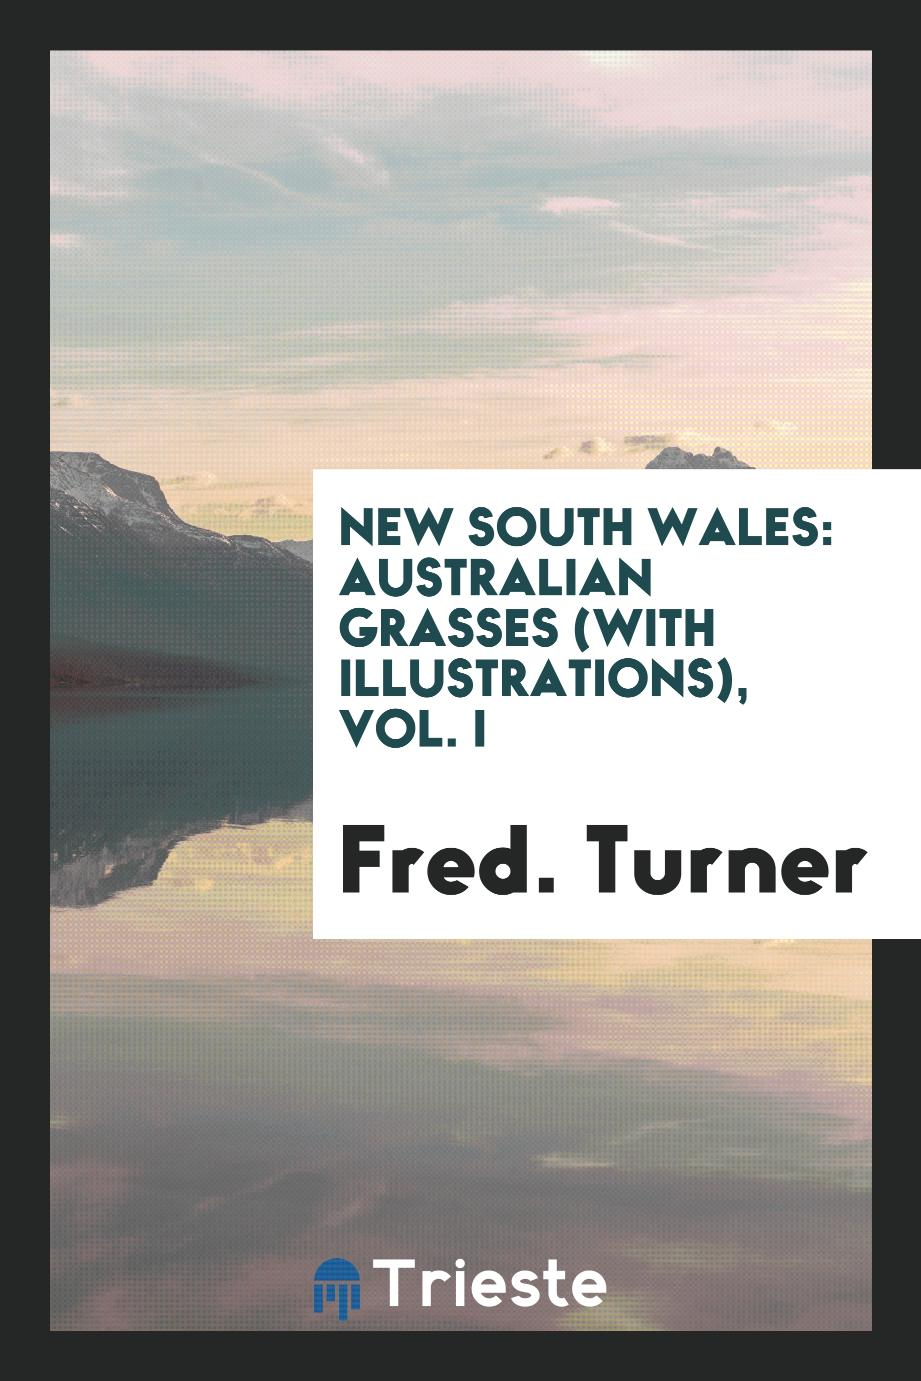 Fred. Turner - New South Wales: Australian grasses (with illustrations), Vol. I